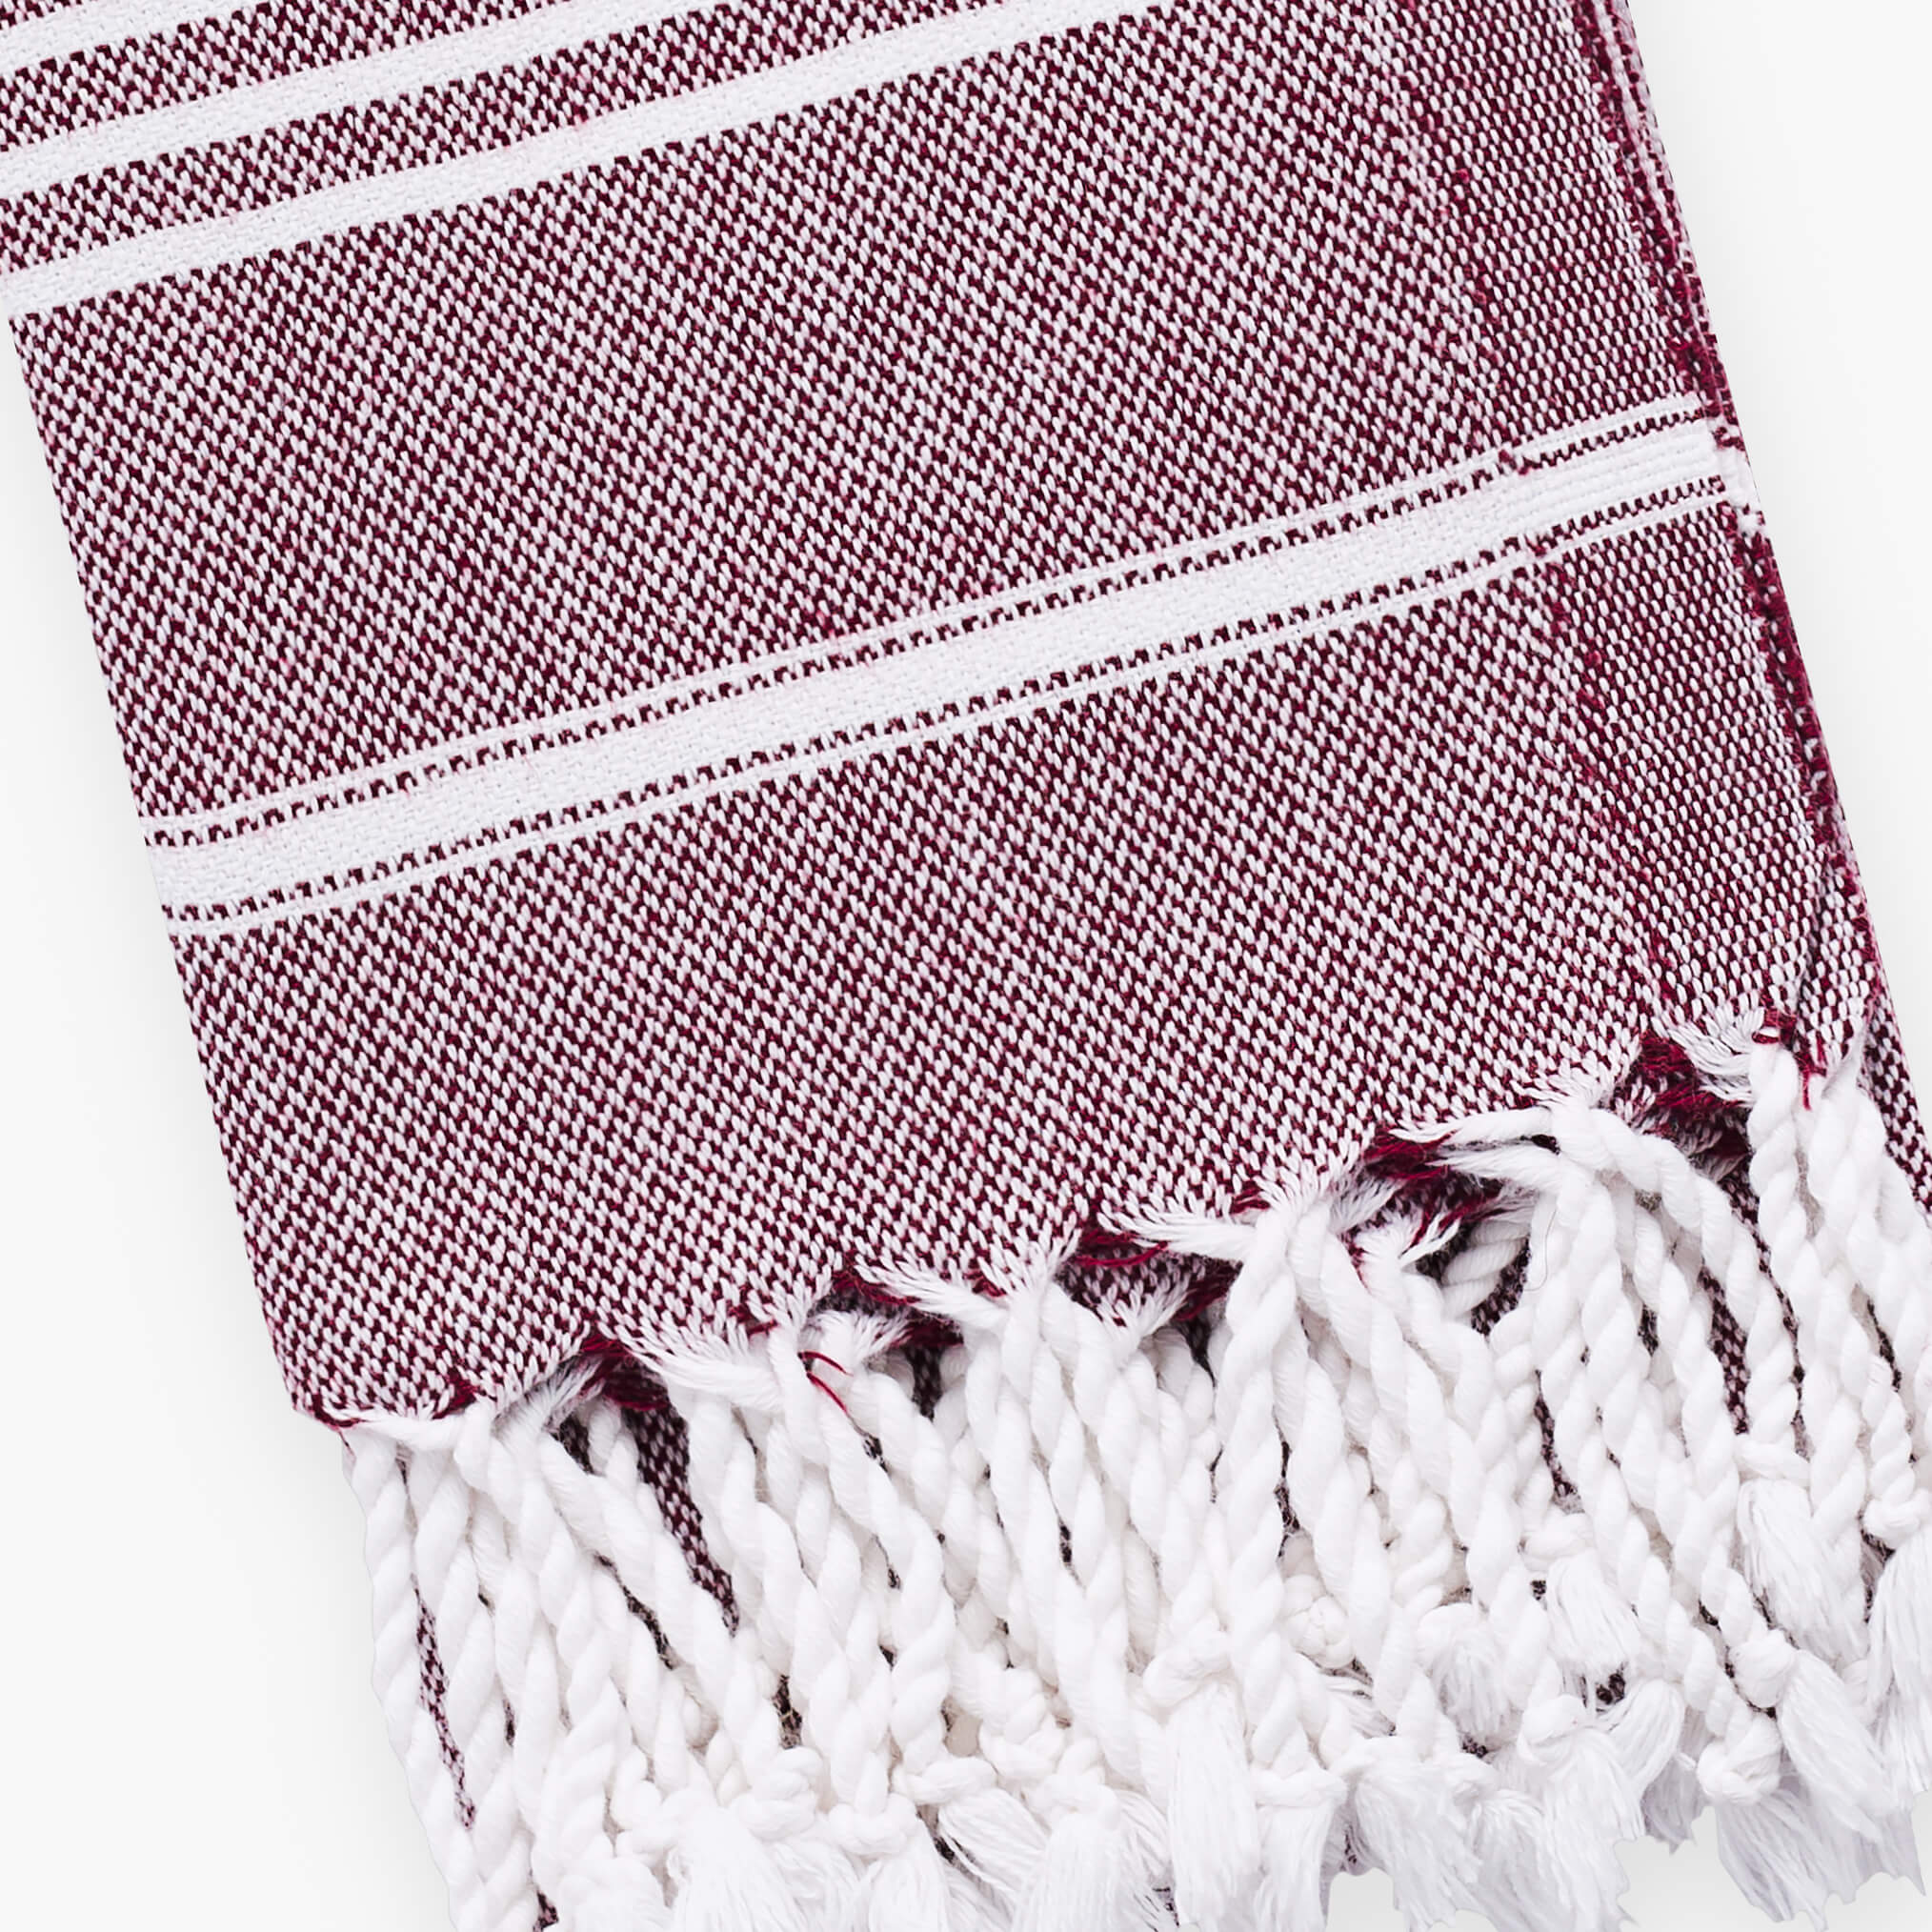 Basic Burgundy Turkish Hand Towel Image 3